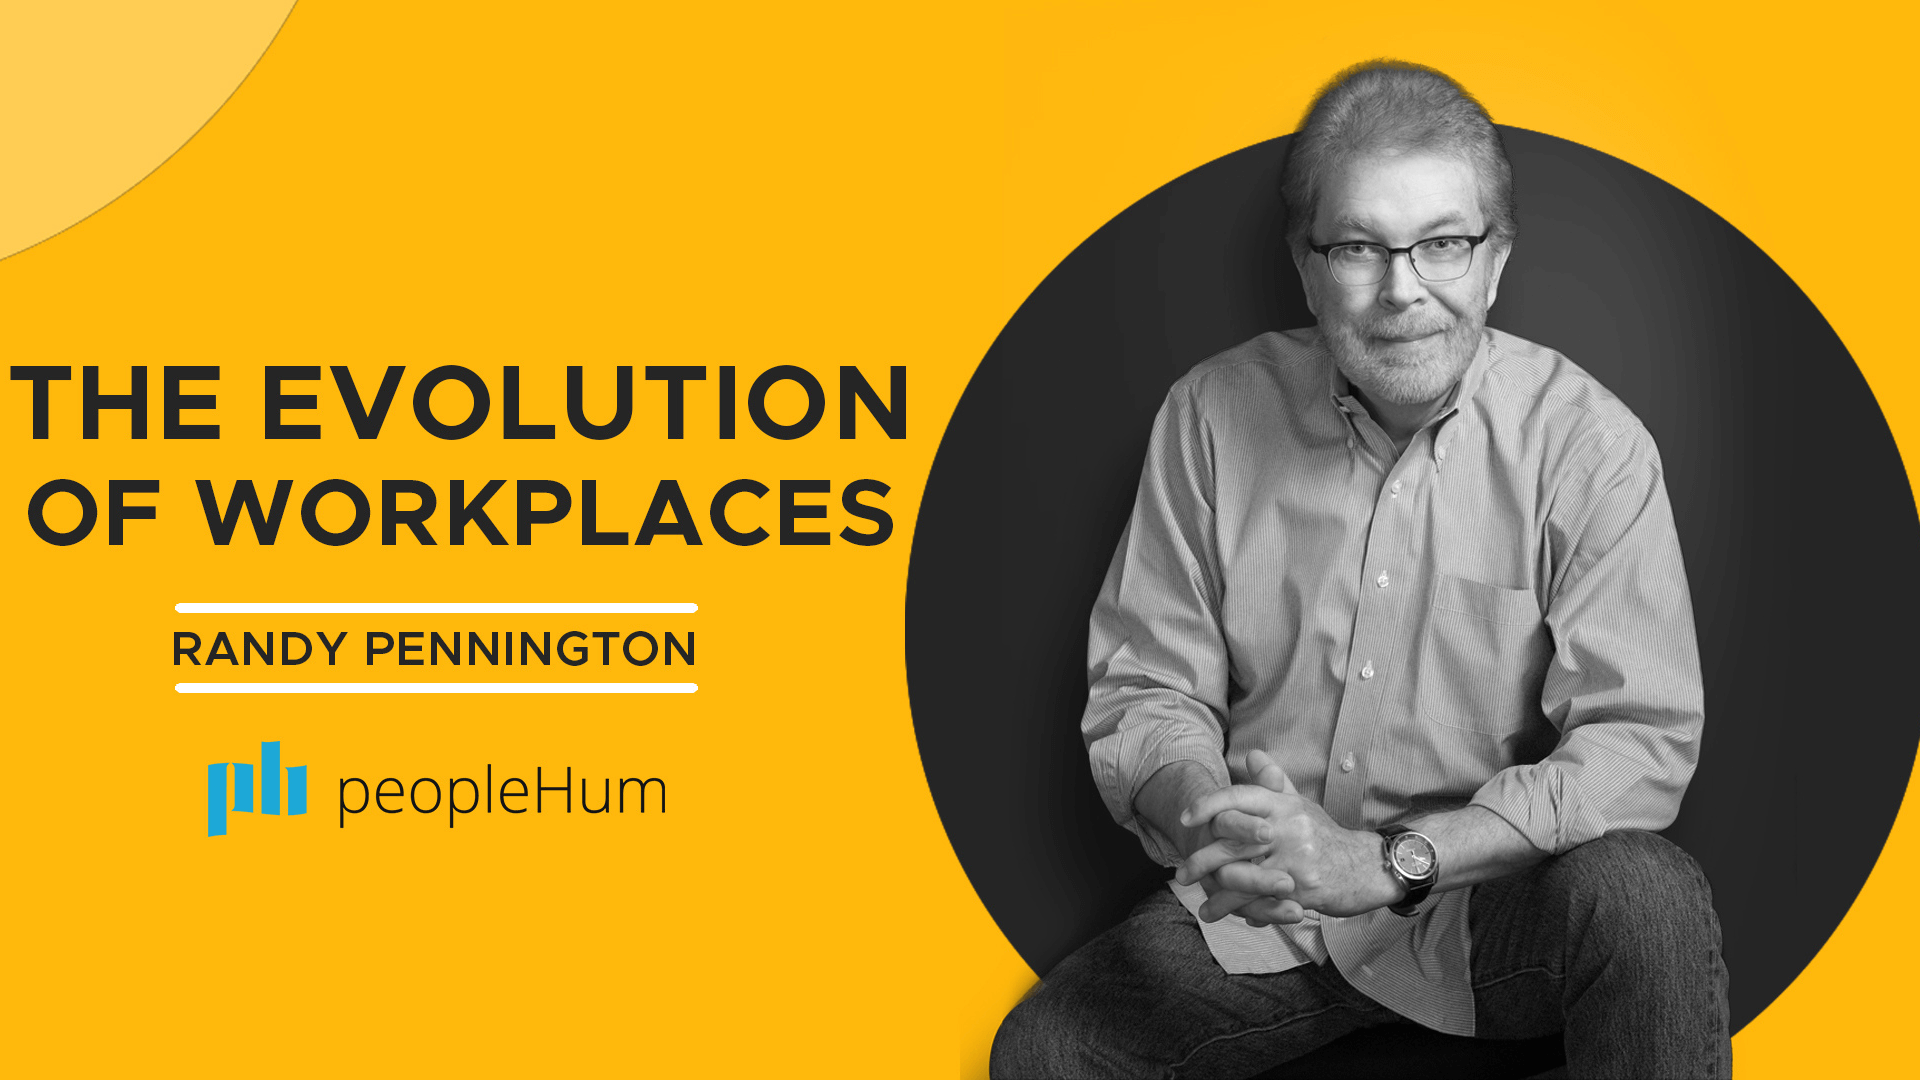 Creating a result-driven workplace culture - Randy Pennington [Interview]